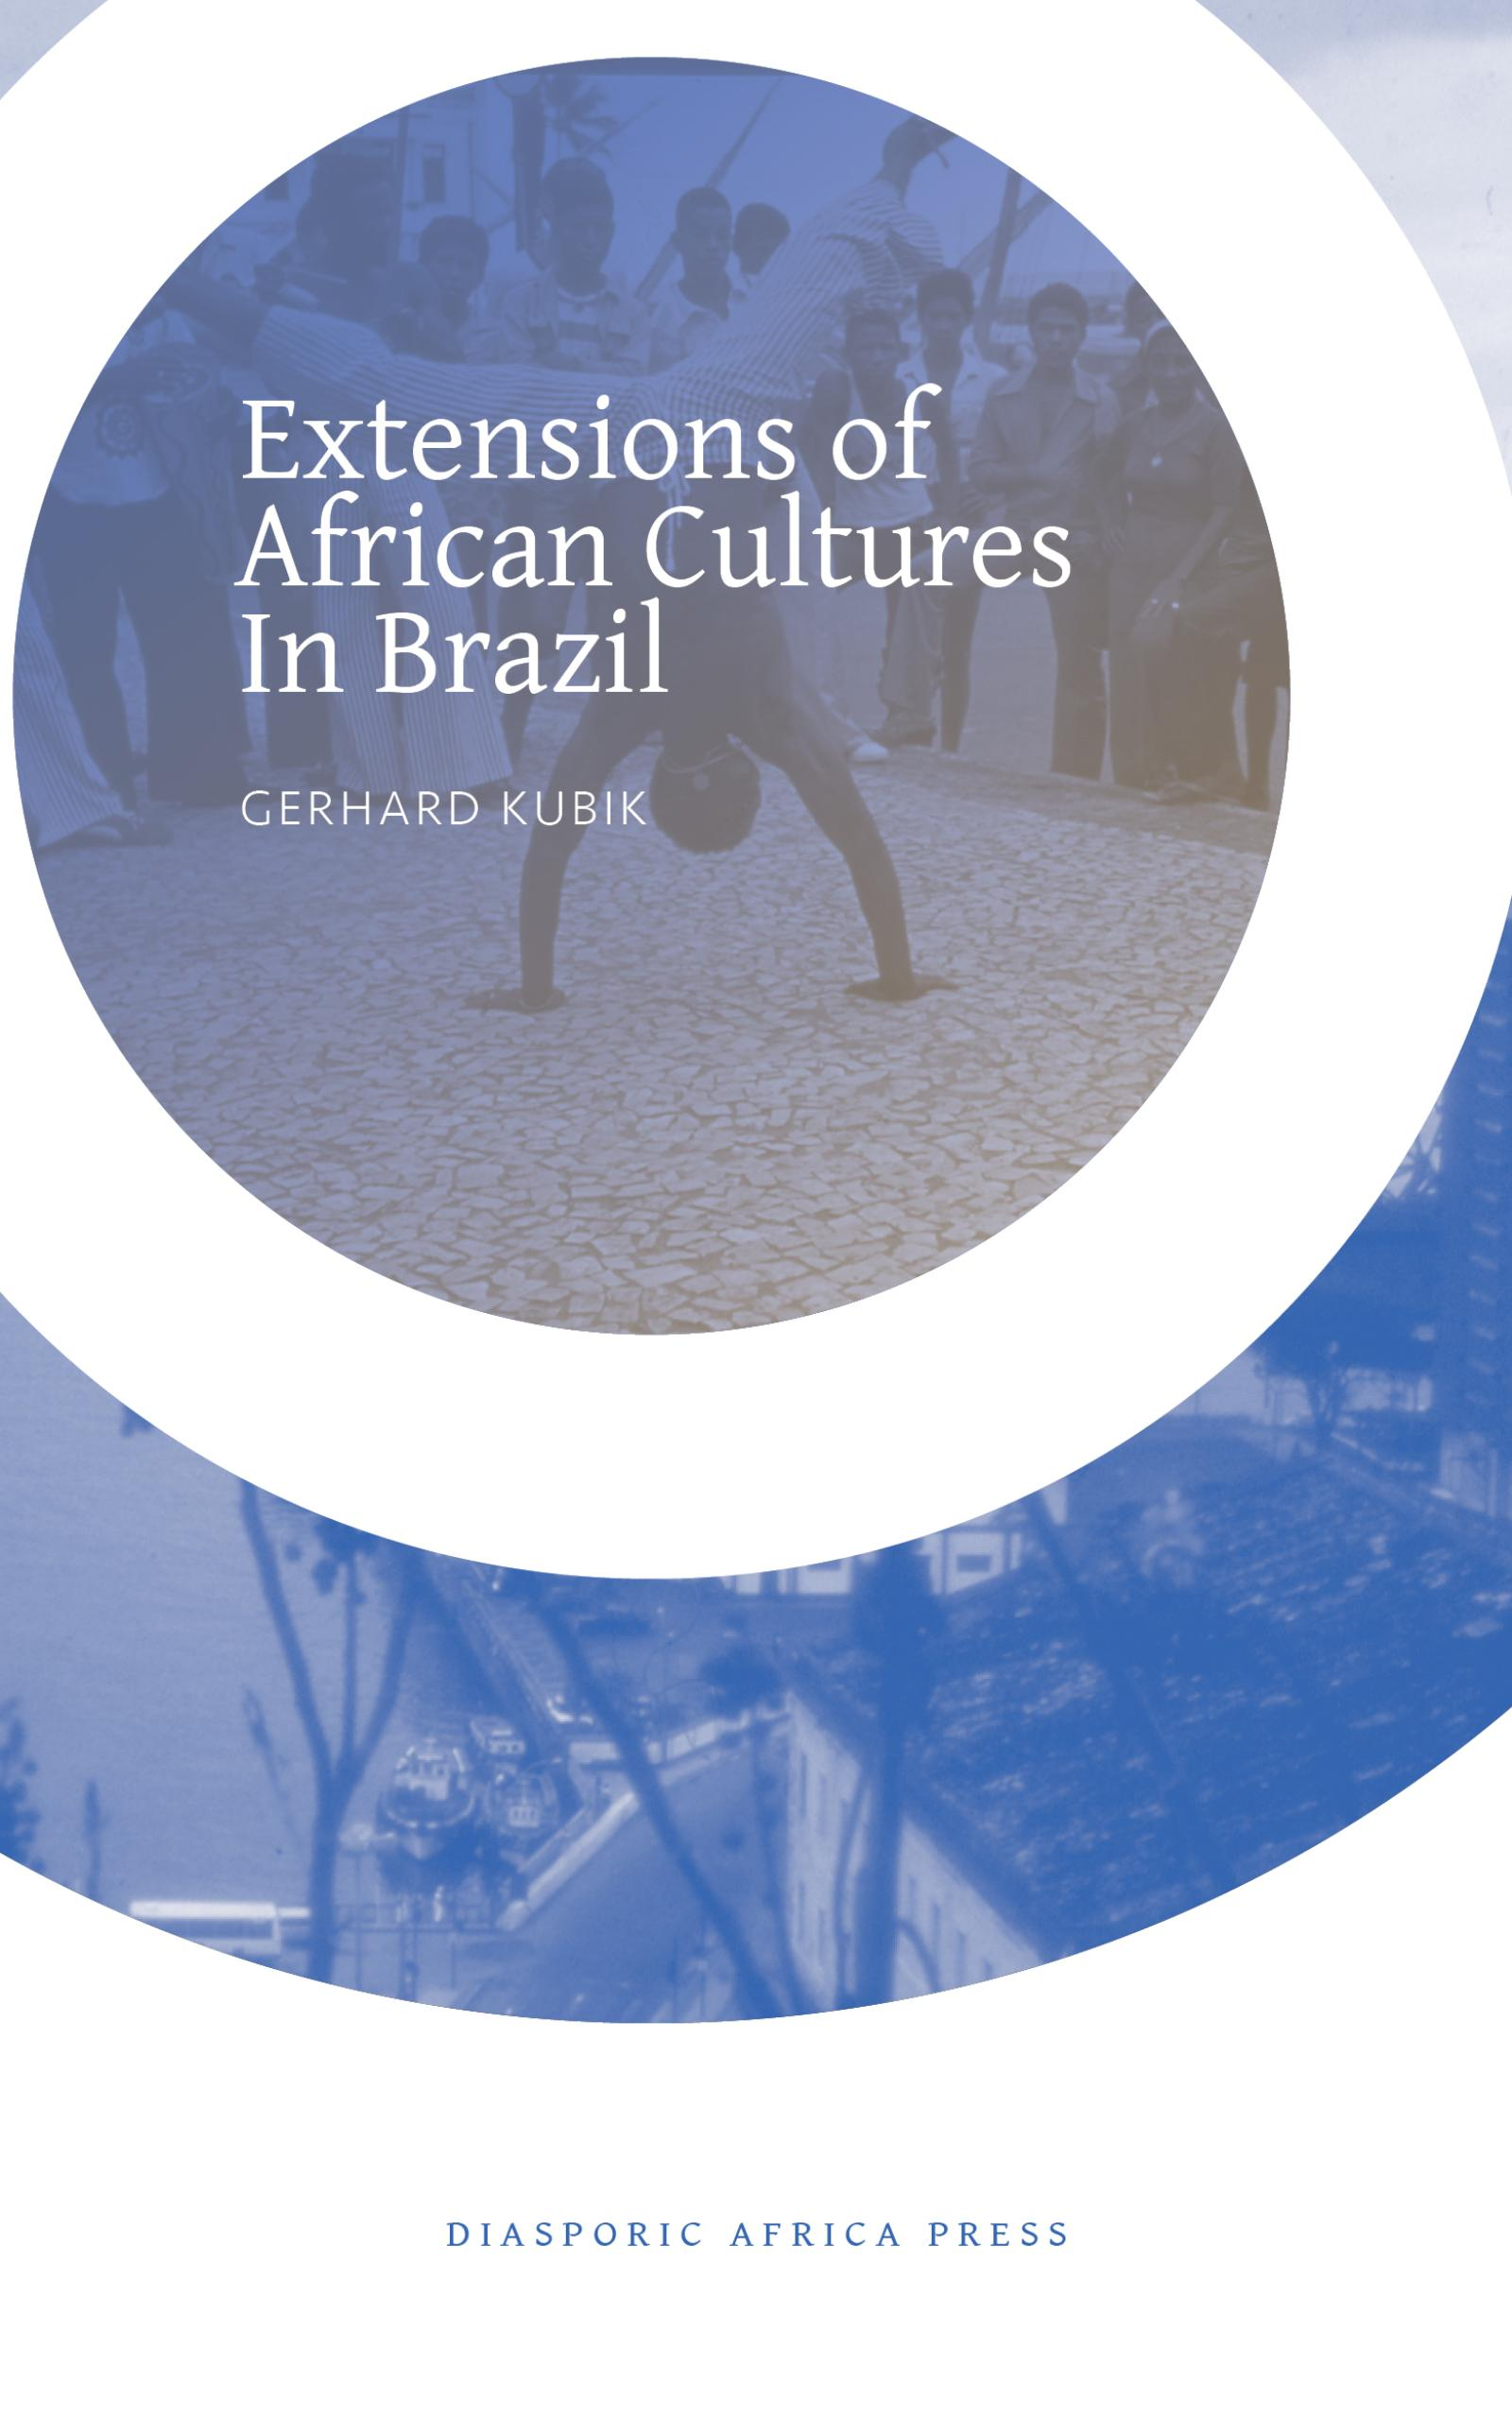 a study of brazil and its culture Retrospective theses and dissertations 2007 carnaval in brazil, samba schools and african culture: a study of samba schools through their african heritage.